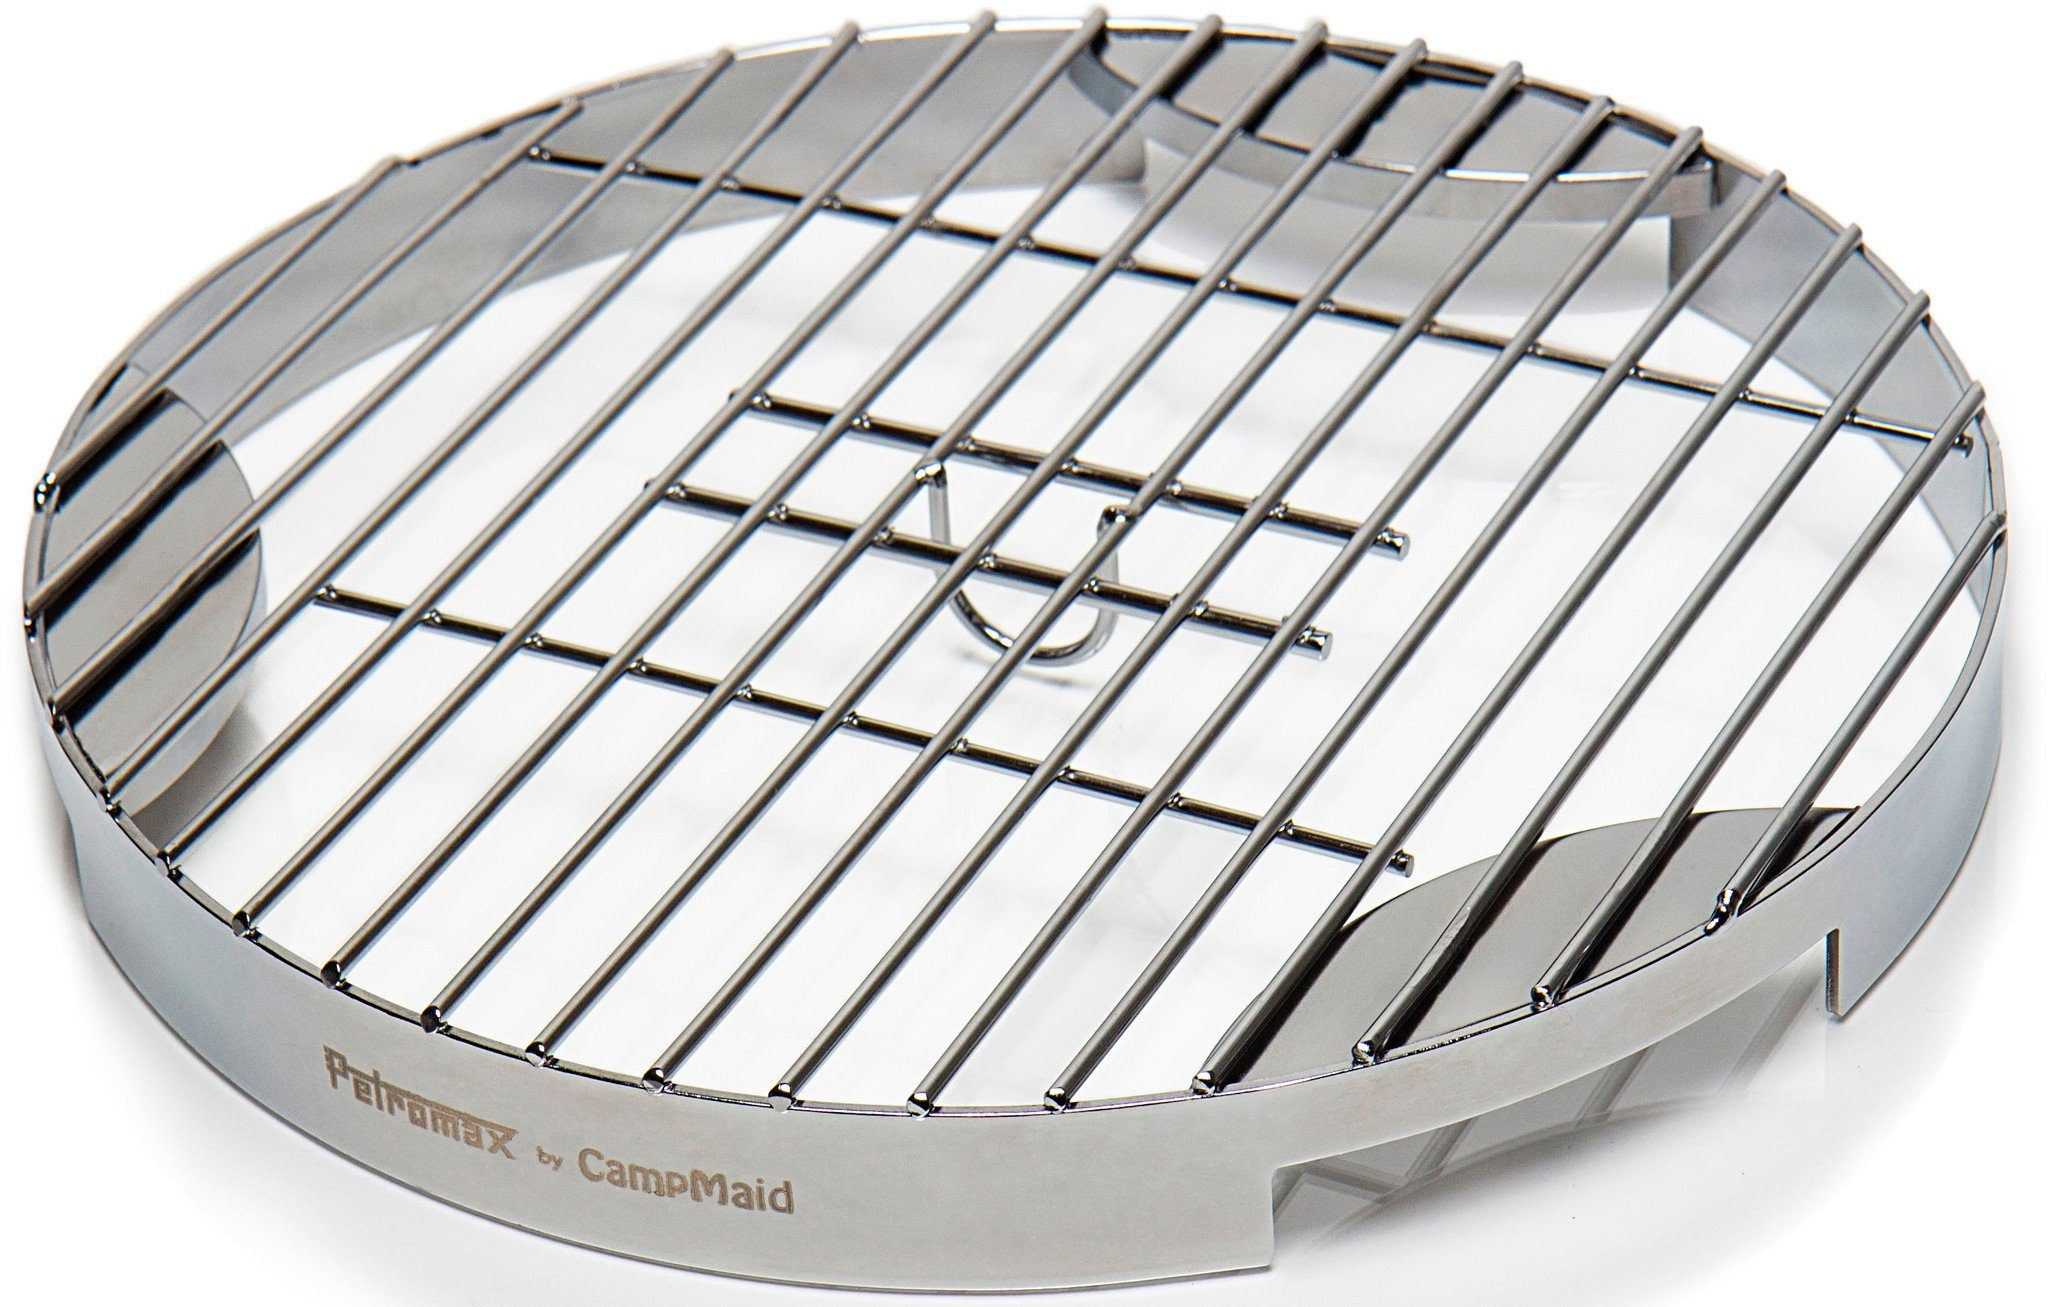 Petromax Camping-Grill »Pro-ft Grillrost«